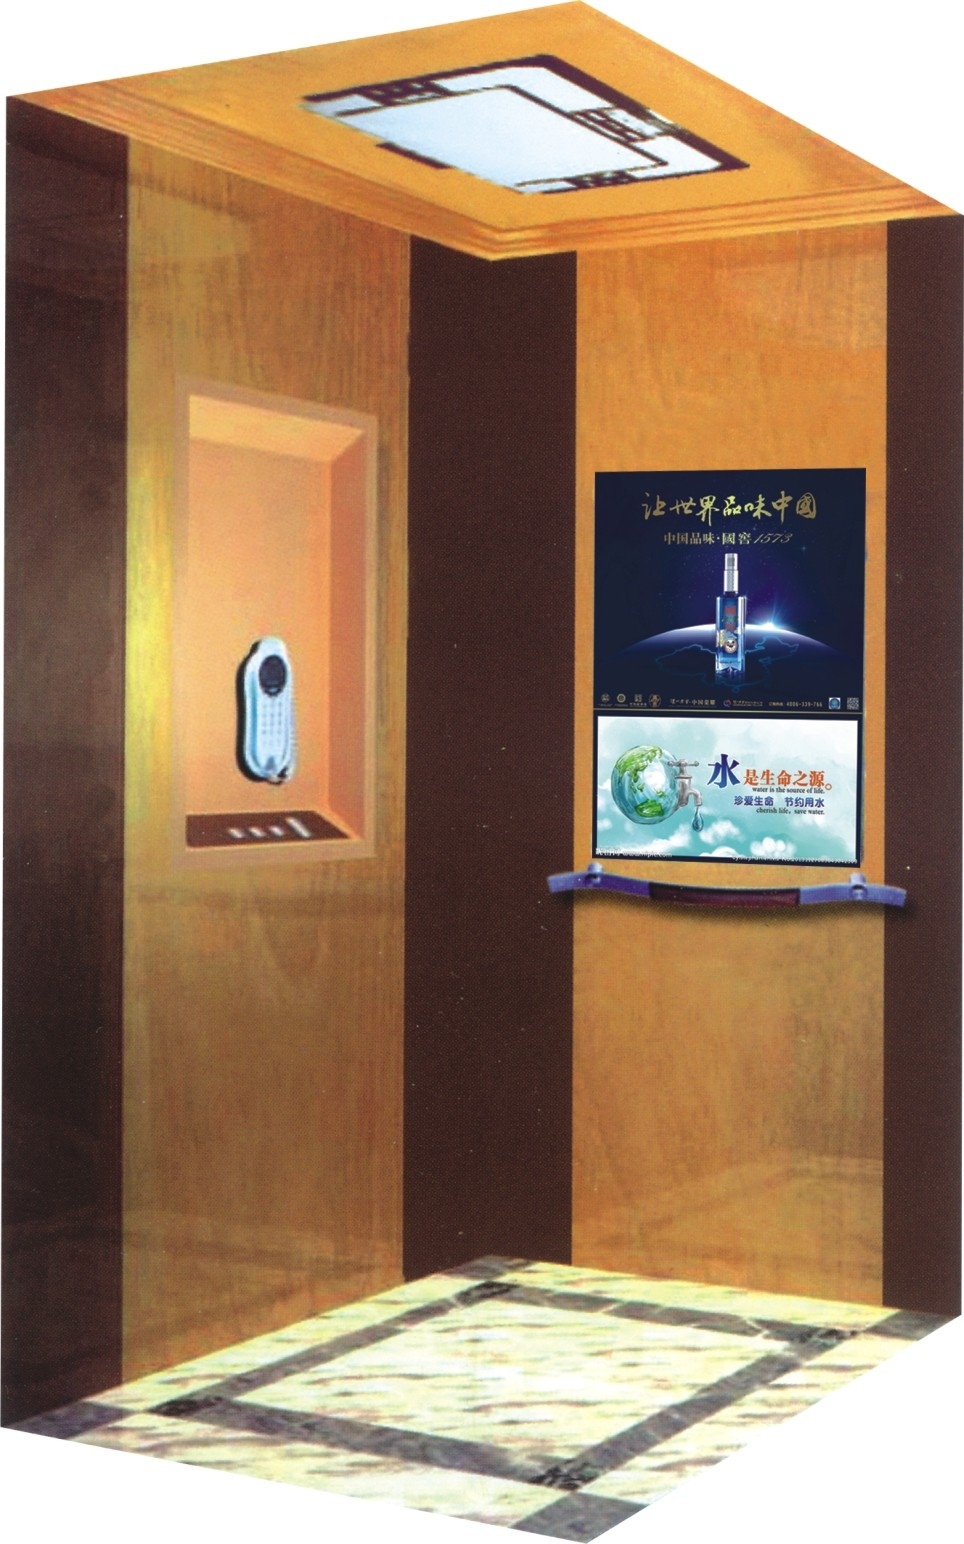 Size for small elevator size cheap price 2 person indoor for Small elevator for home price